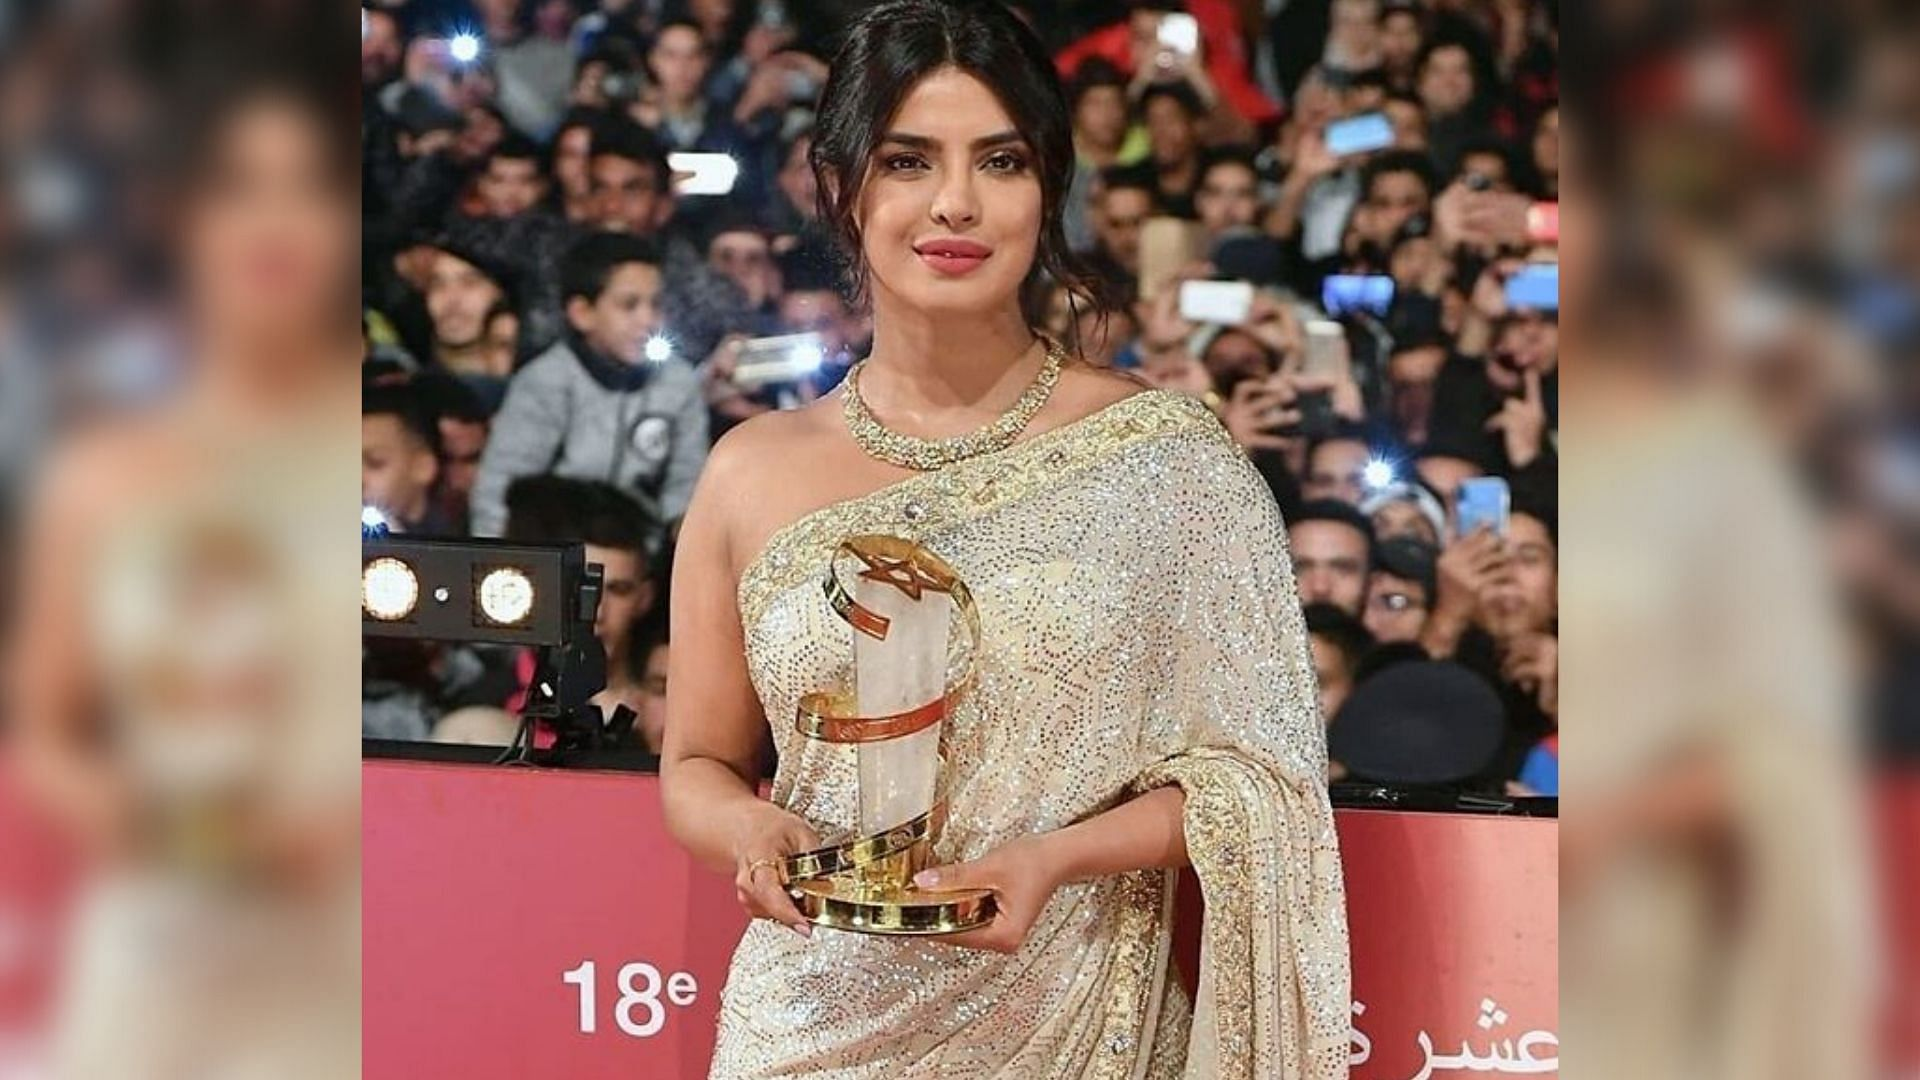 PC Honoured for Contribution to Cinema at Marrakech Film Fest